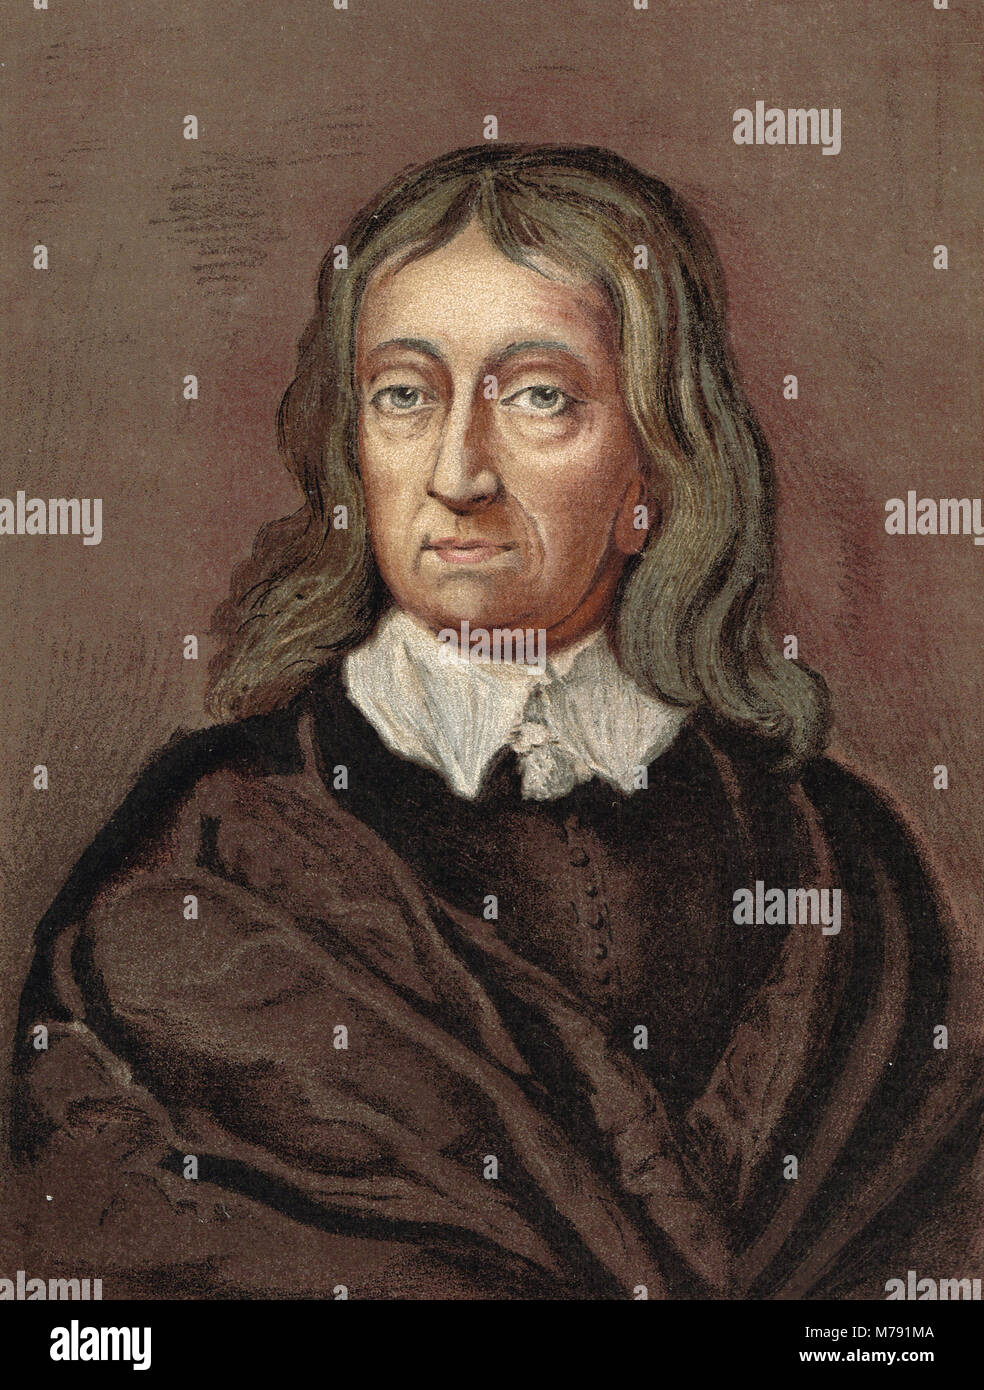 a biography of john milton an english poet John milton was an english poet, polemicist, man of letters, and a civil servant for the commonwealth of england under oliver cromwell he is known for the works: paradise lost, paradise regained, lycidas, l'allegro, and il penseroso.